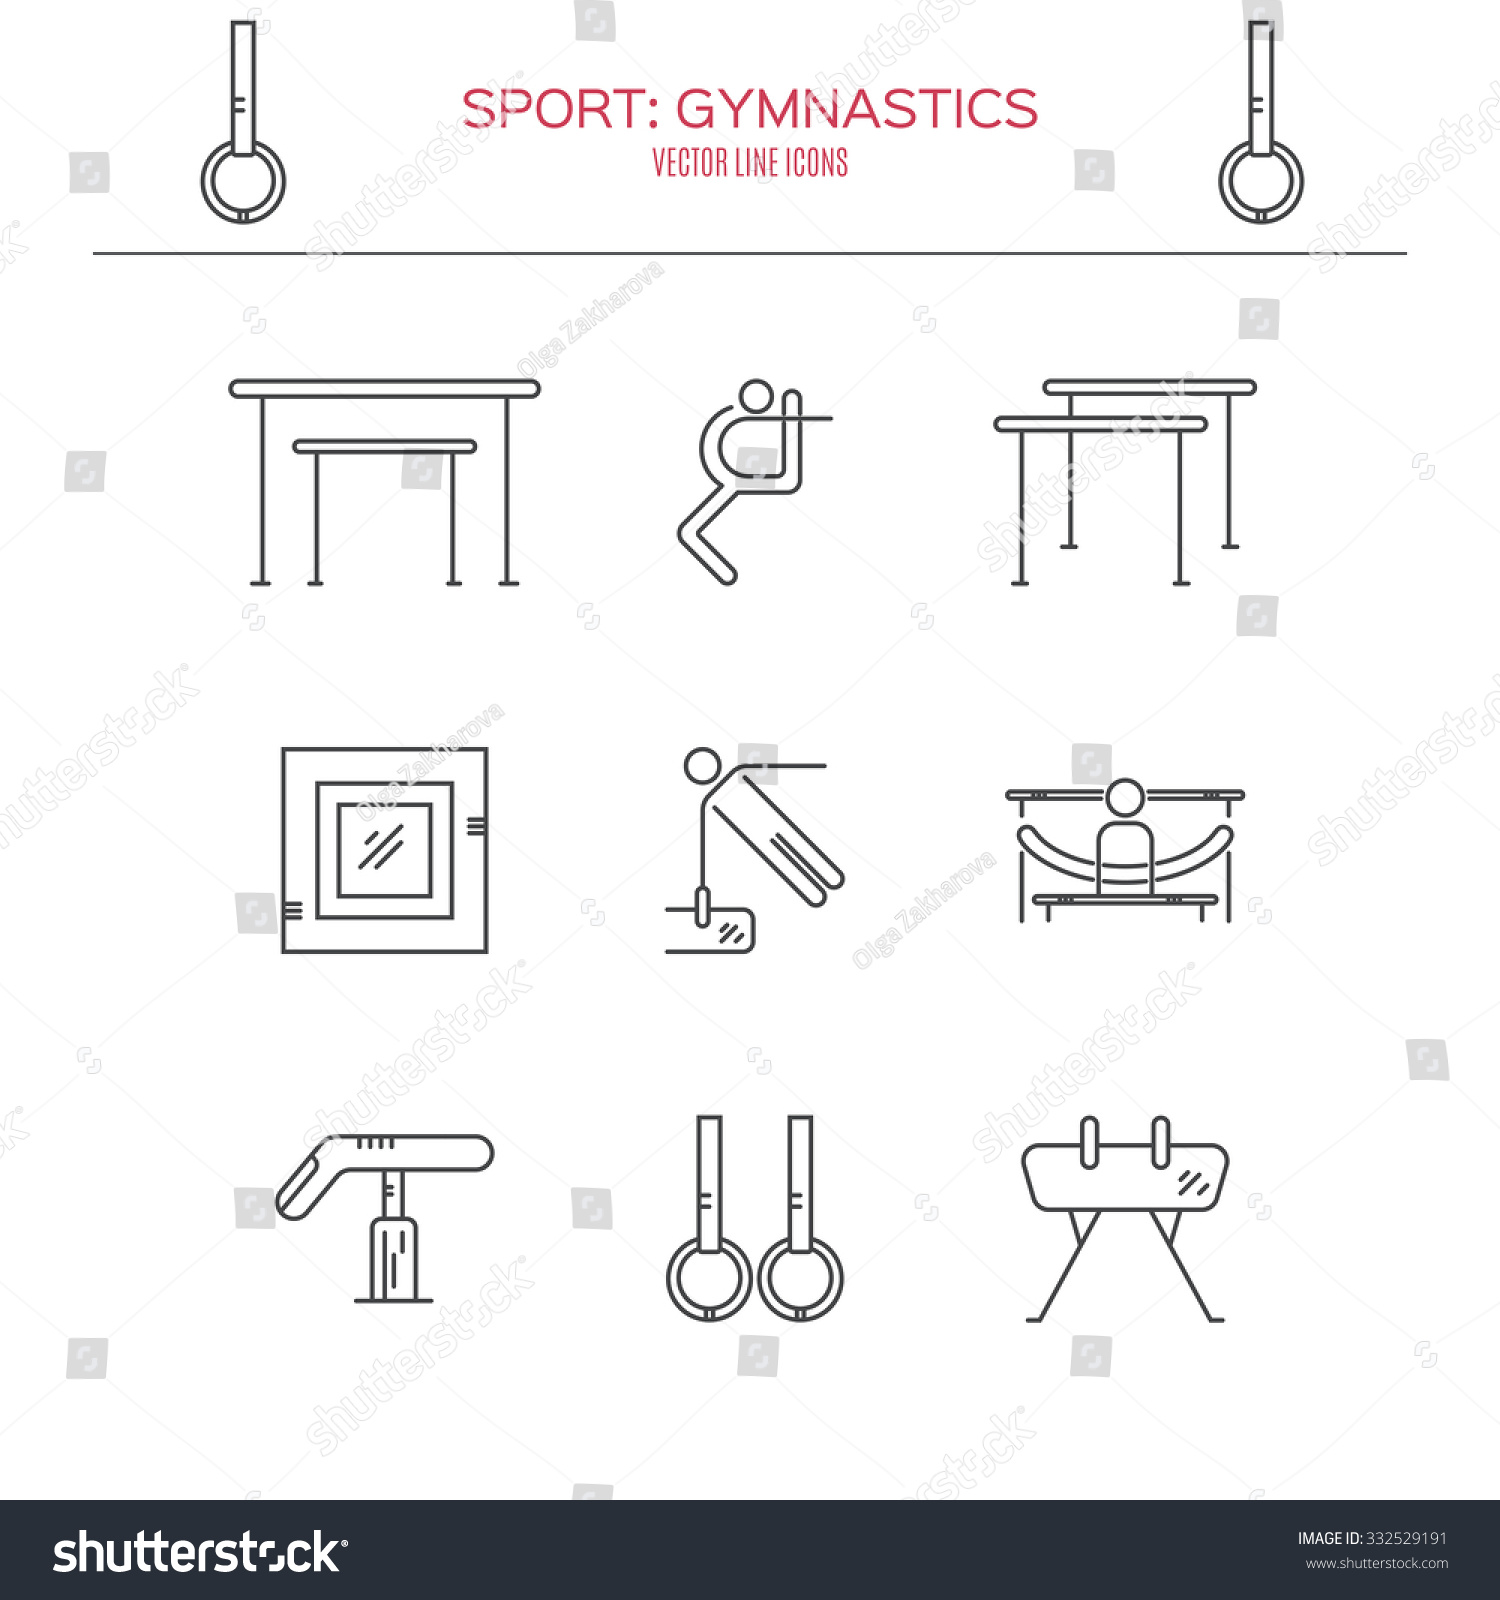 Modern Unique Artistic Gymnastics Icons Symbols Stock